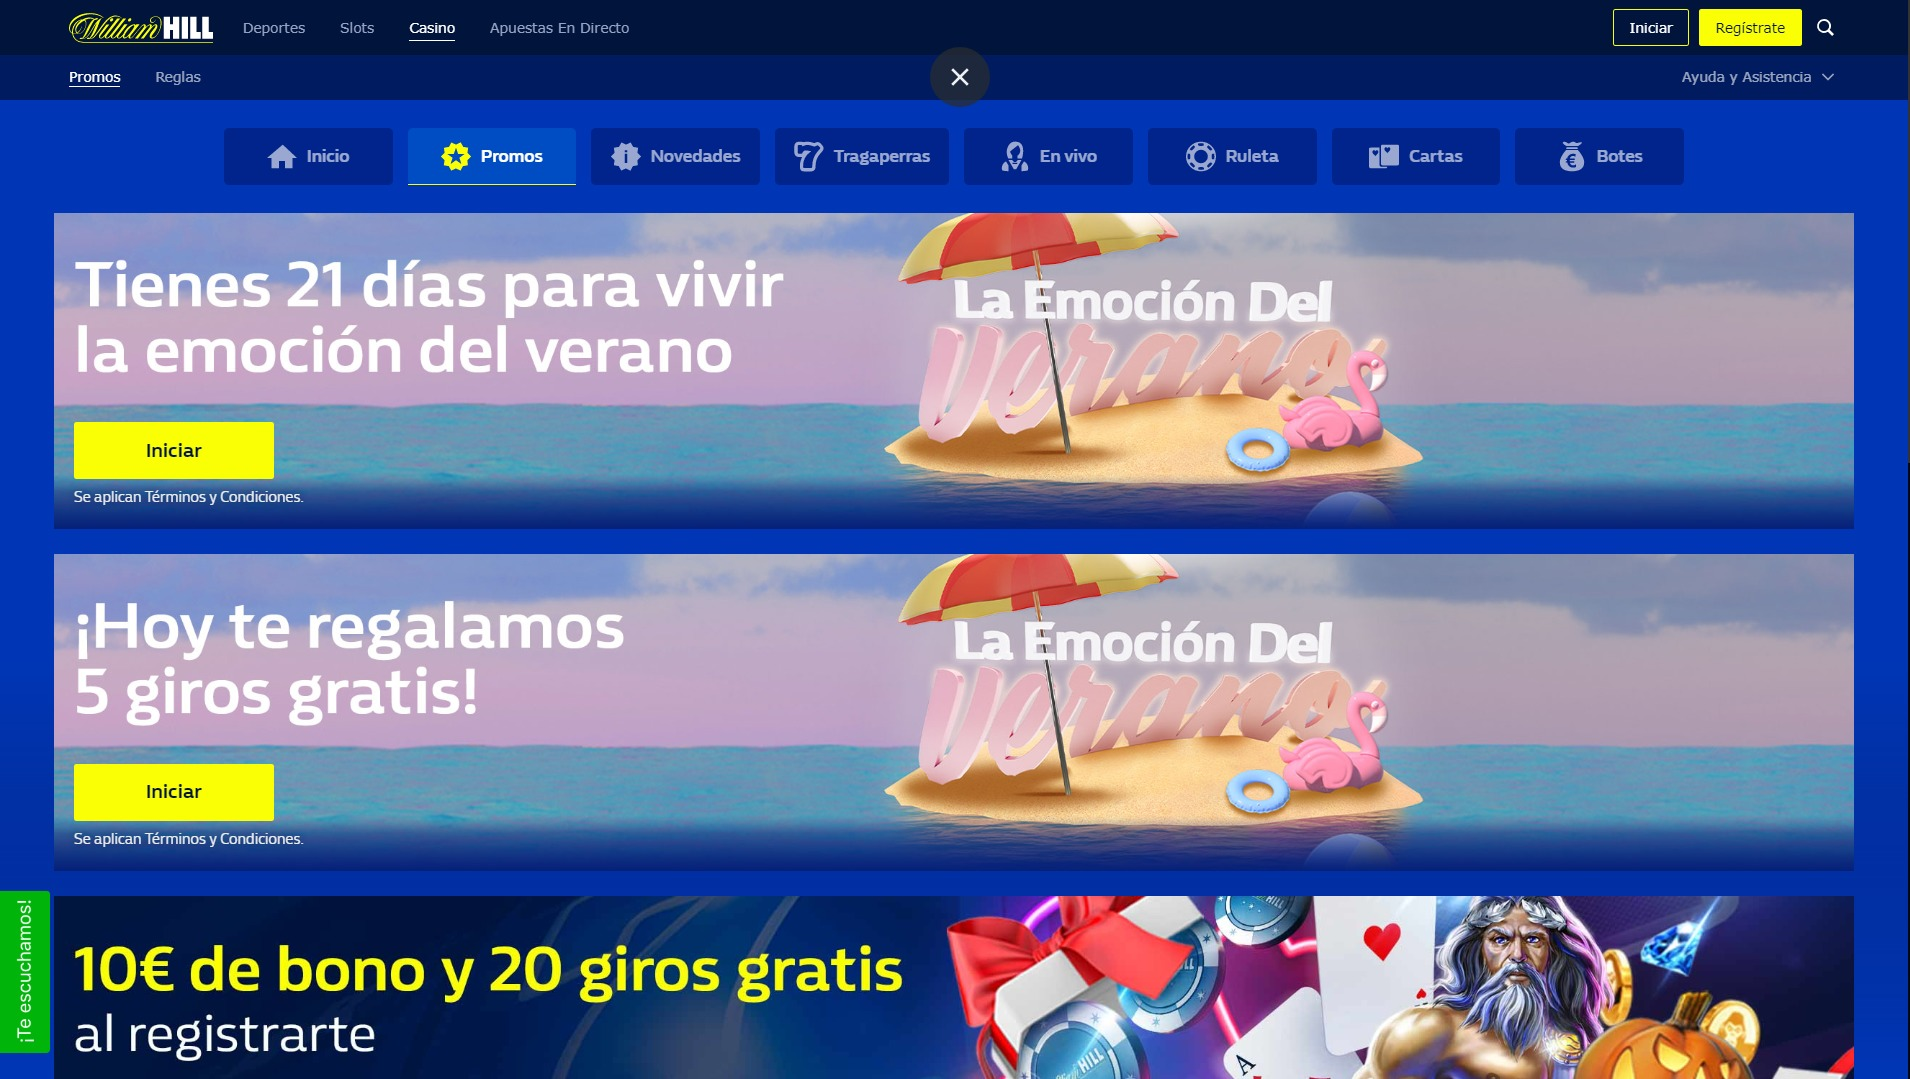 William Hill Casino Promo Ordenador